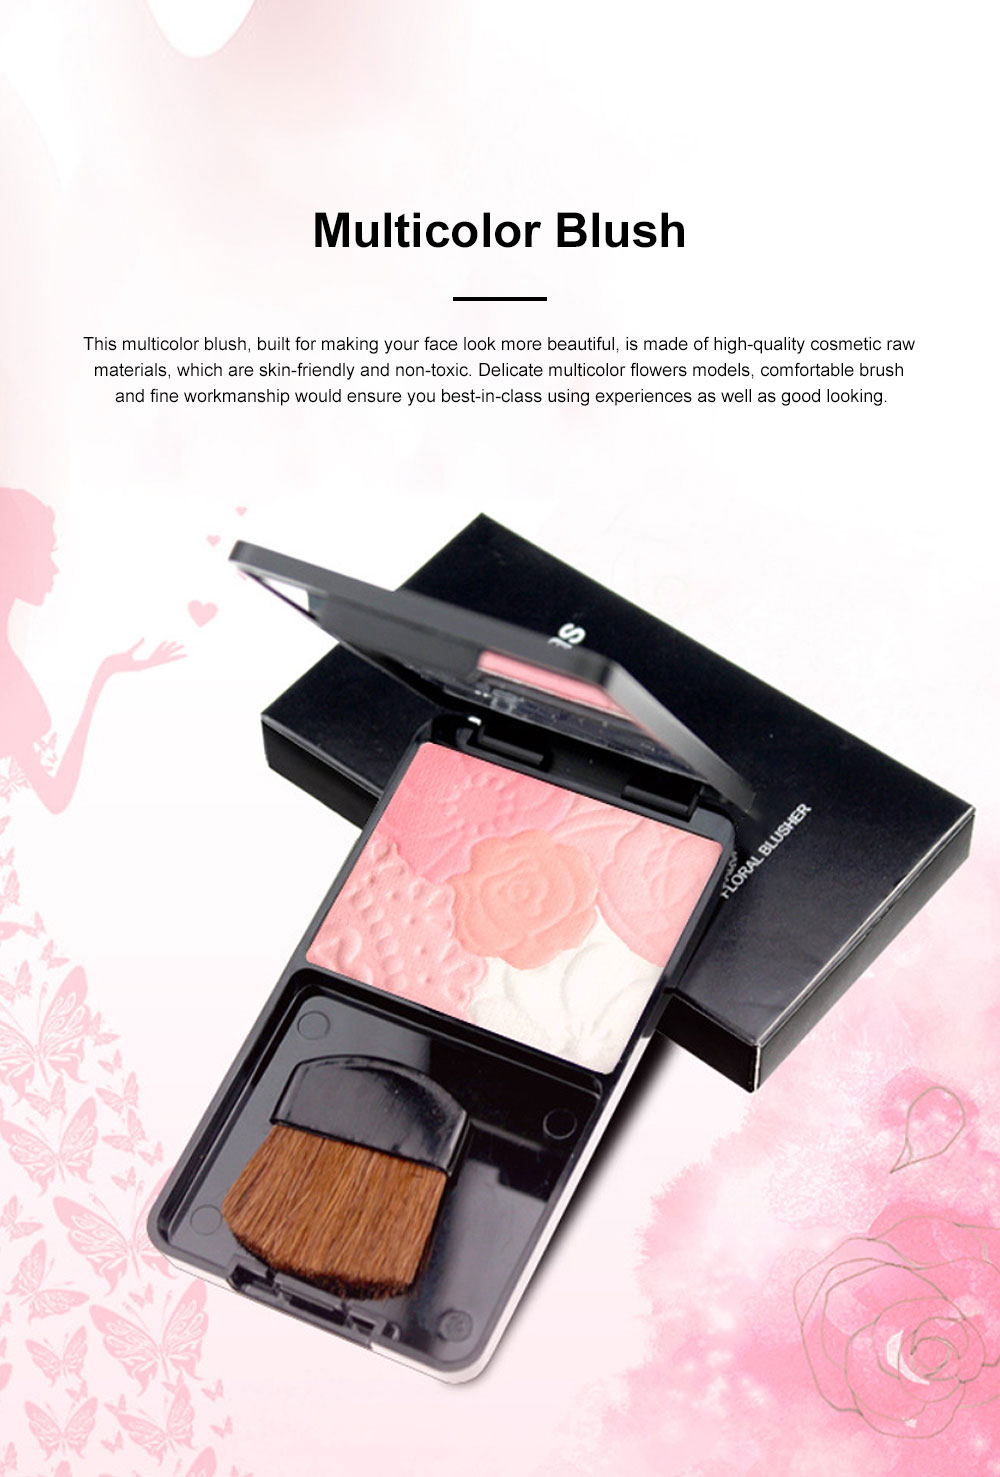 Exquisite Fancy Carved Flower Model Multicolor Blusher Shading Powder Blush with Cosmetic Brush Make-up Product 0